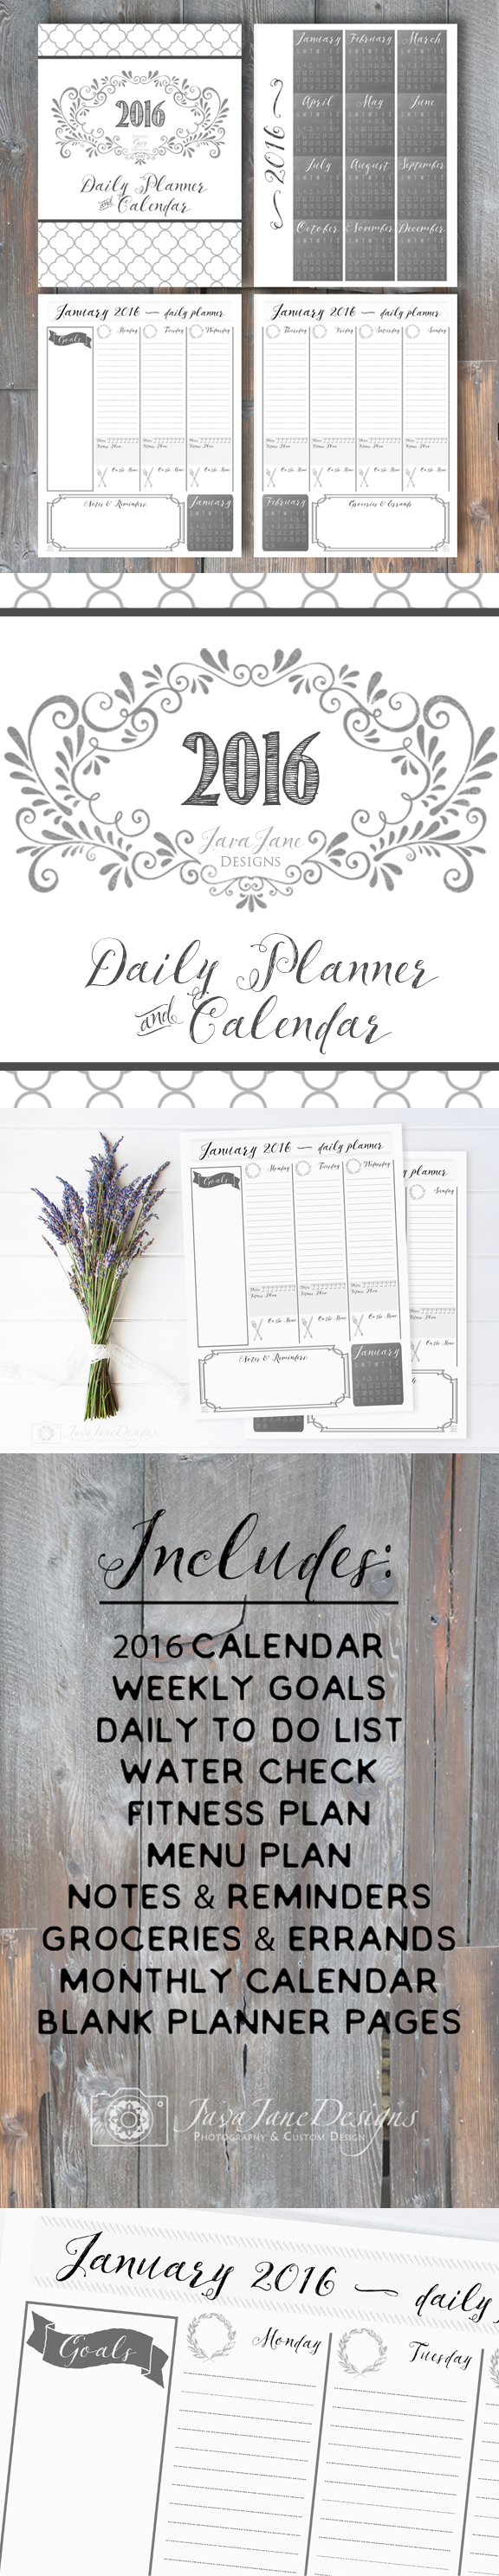 Printable 2016 Daily Weekly Planner